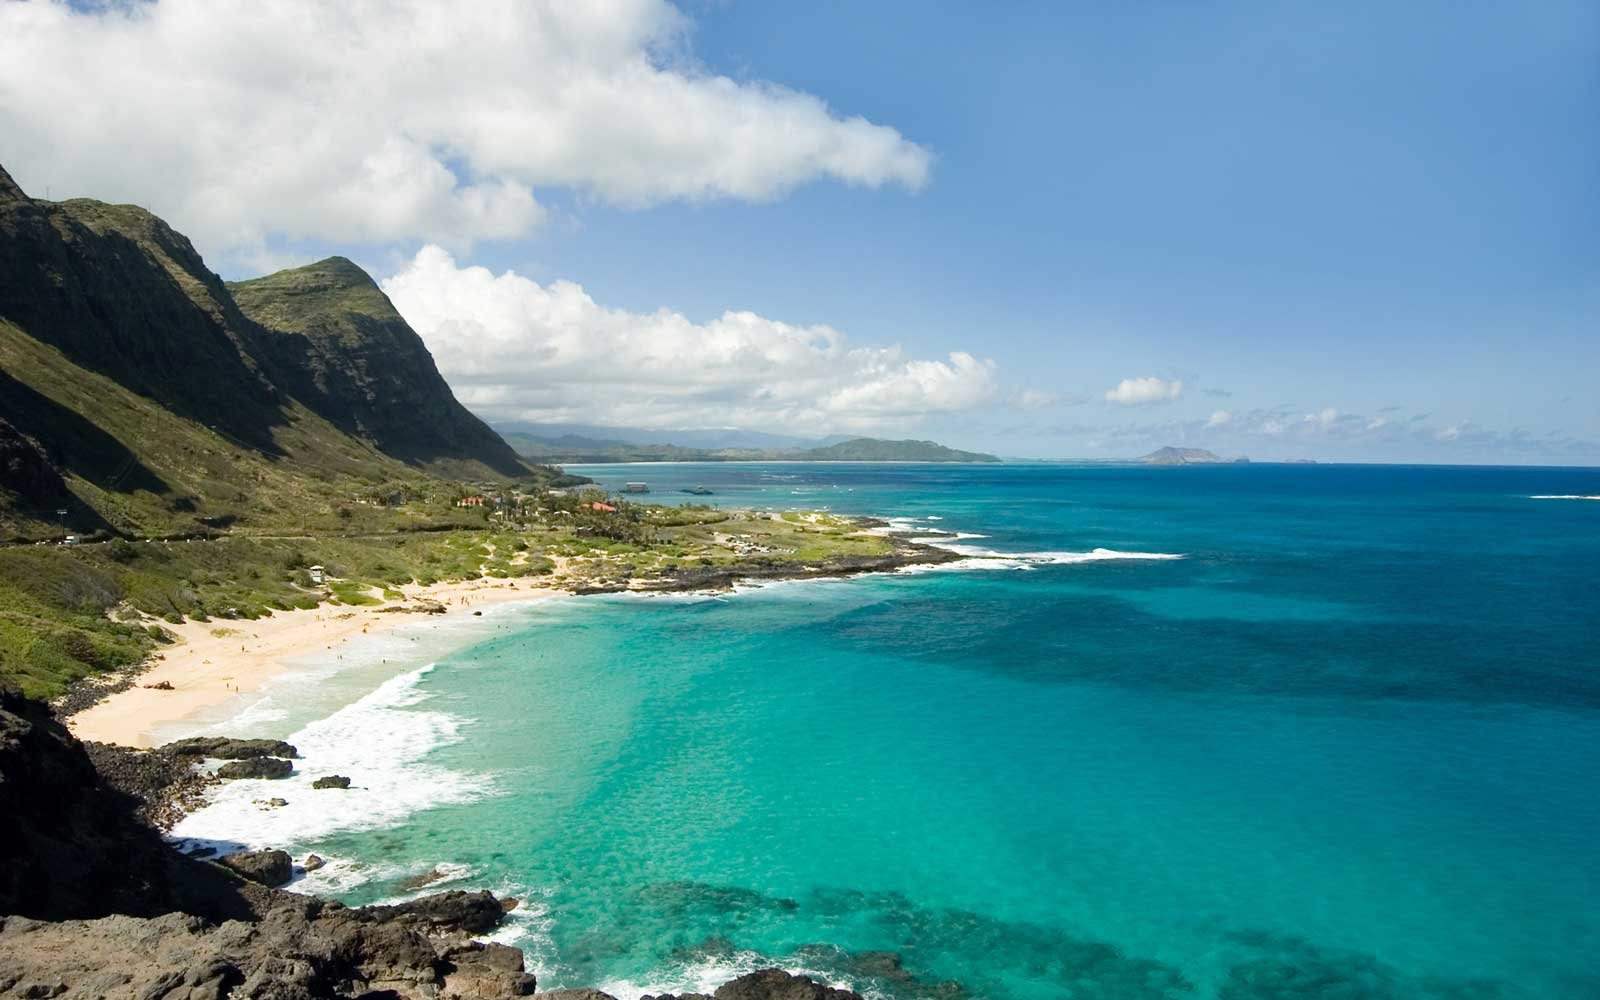 Oahu Panoramic Scenic View from above